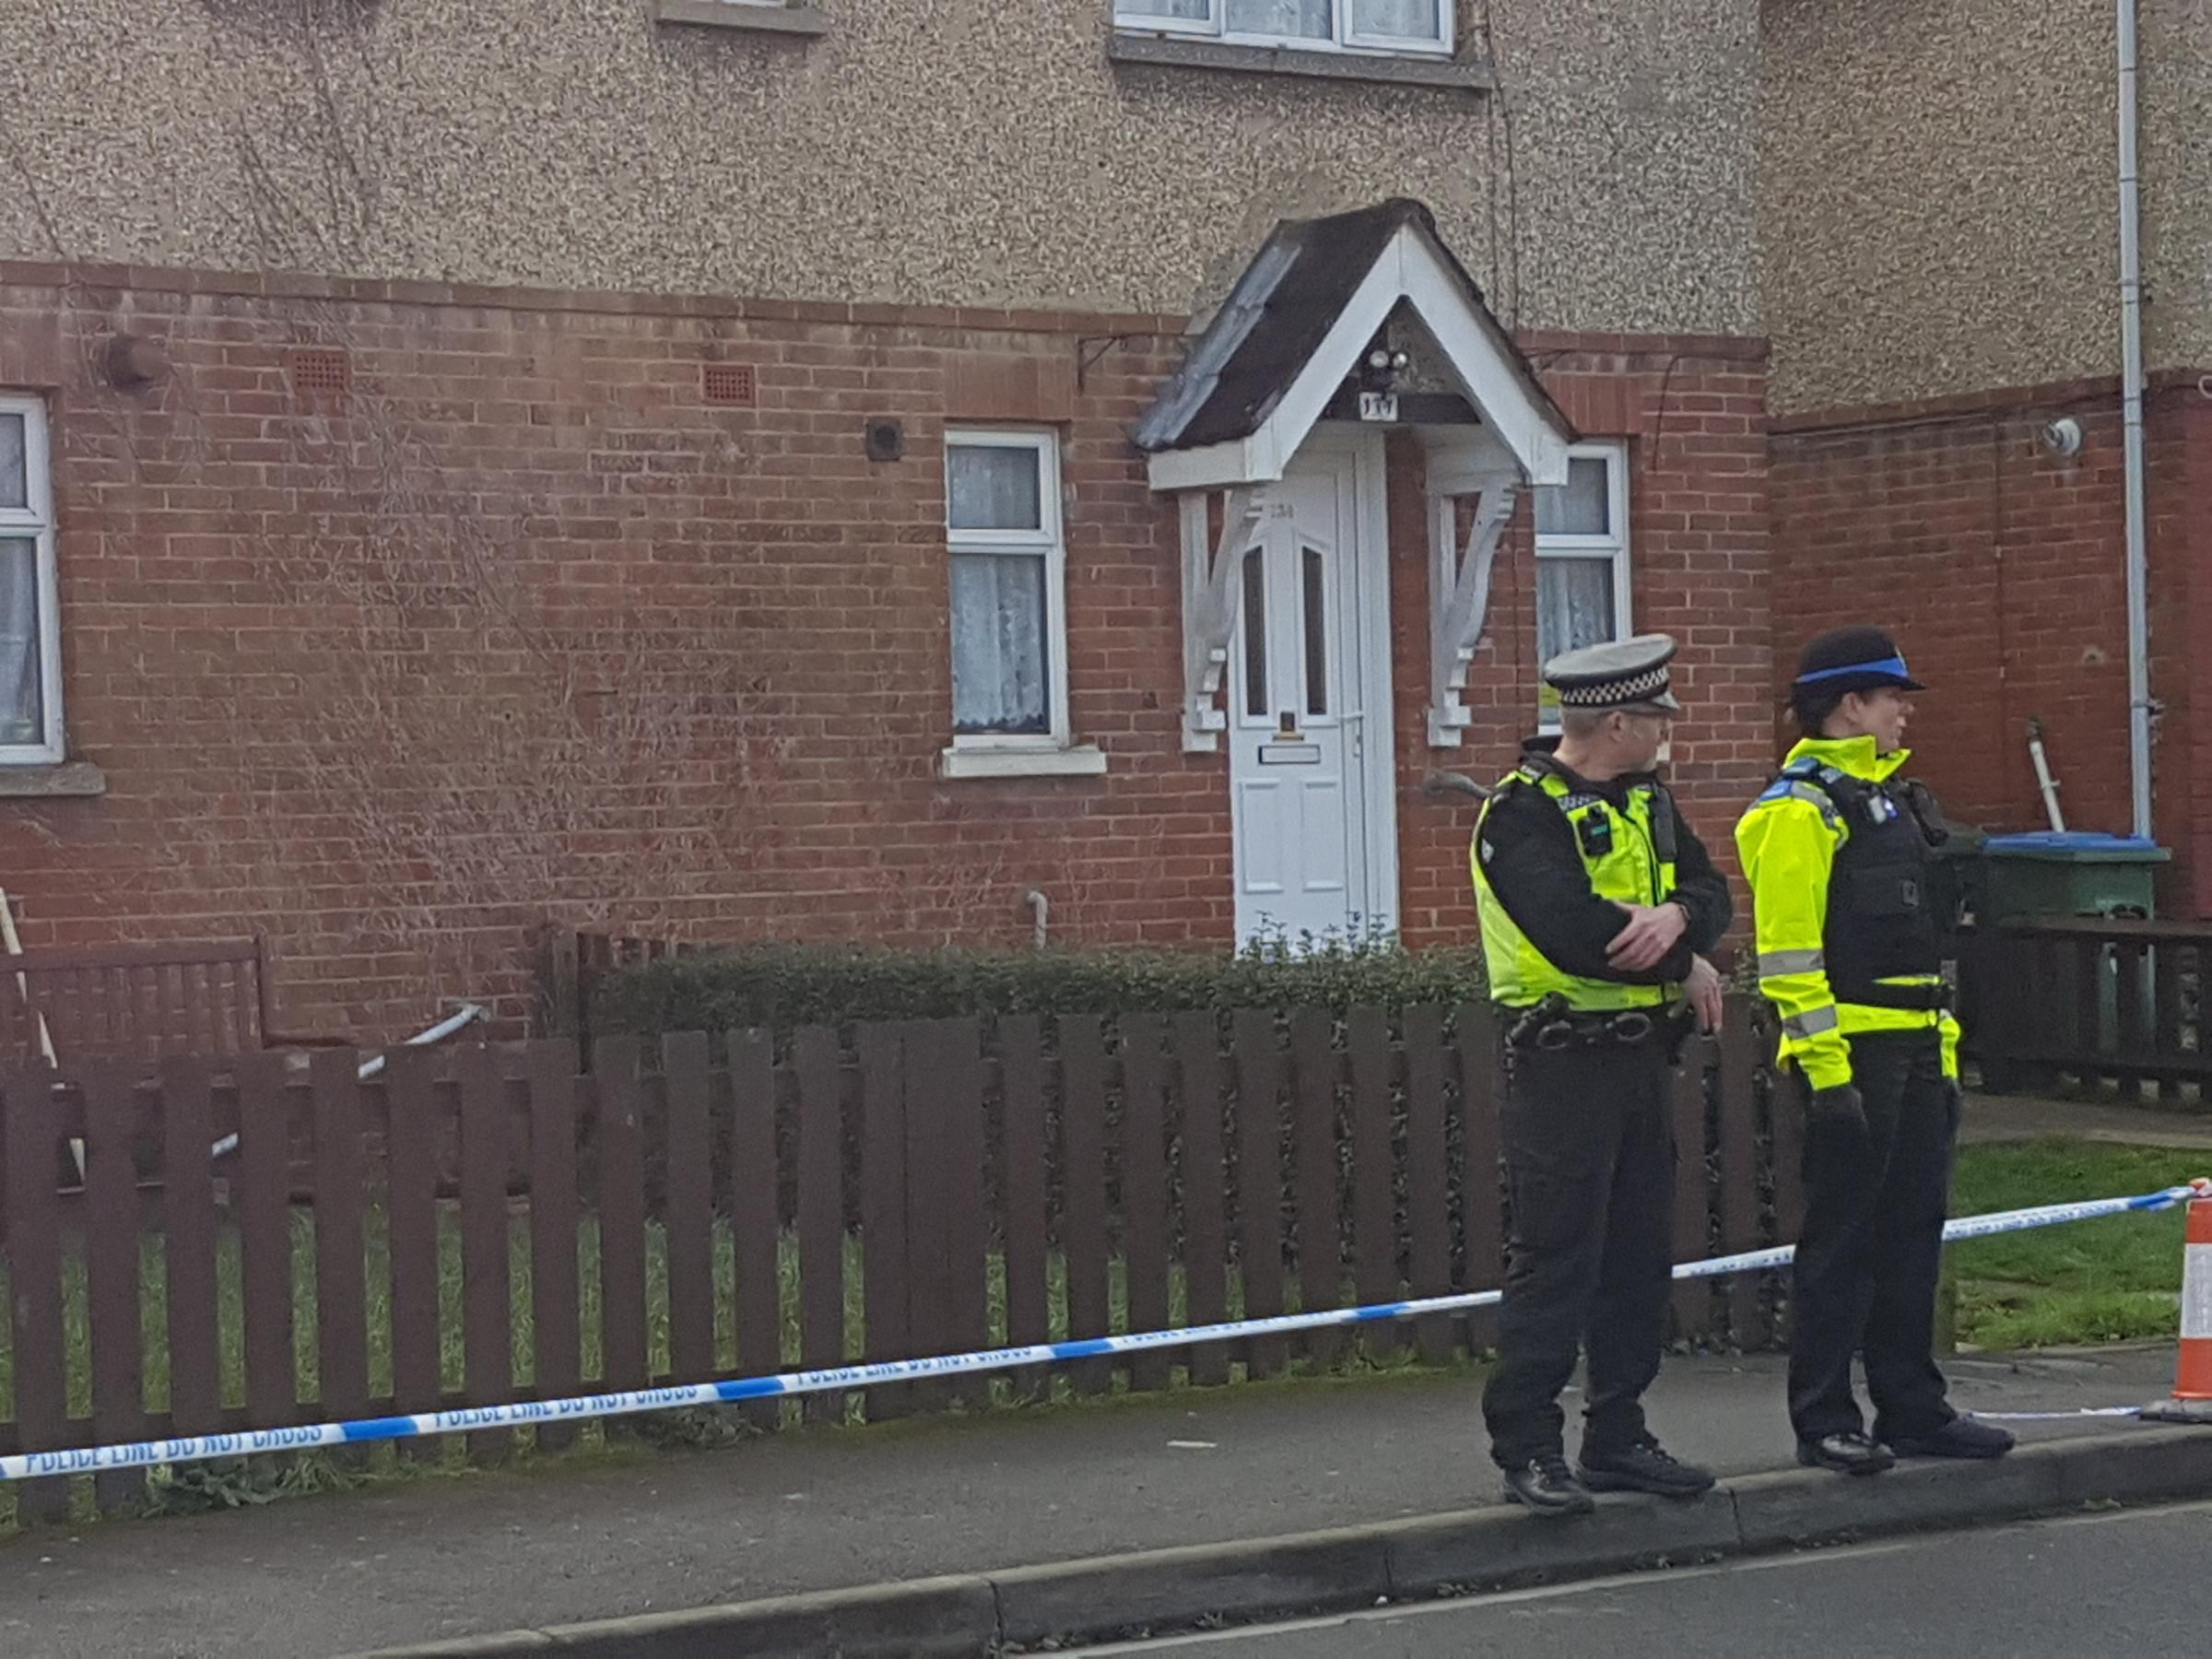 Police at the scene in Bluebell Road, Southampton, where a teenager was shot